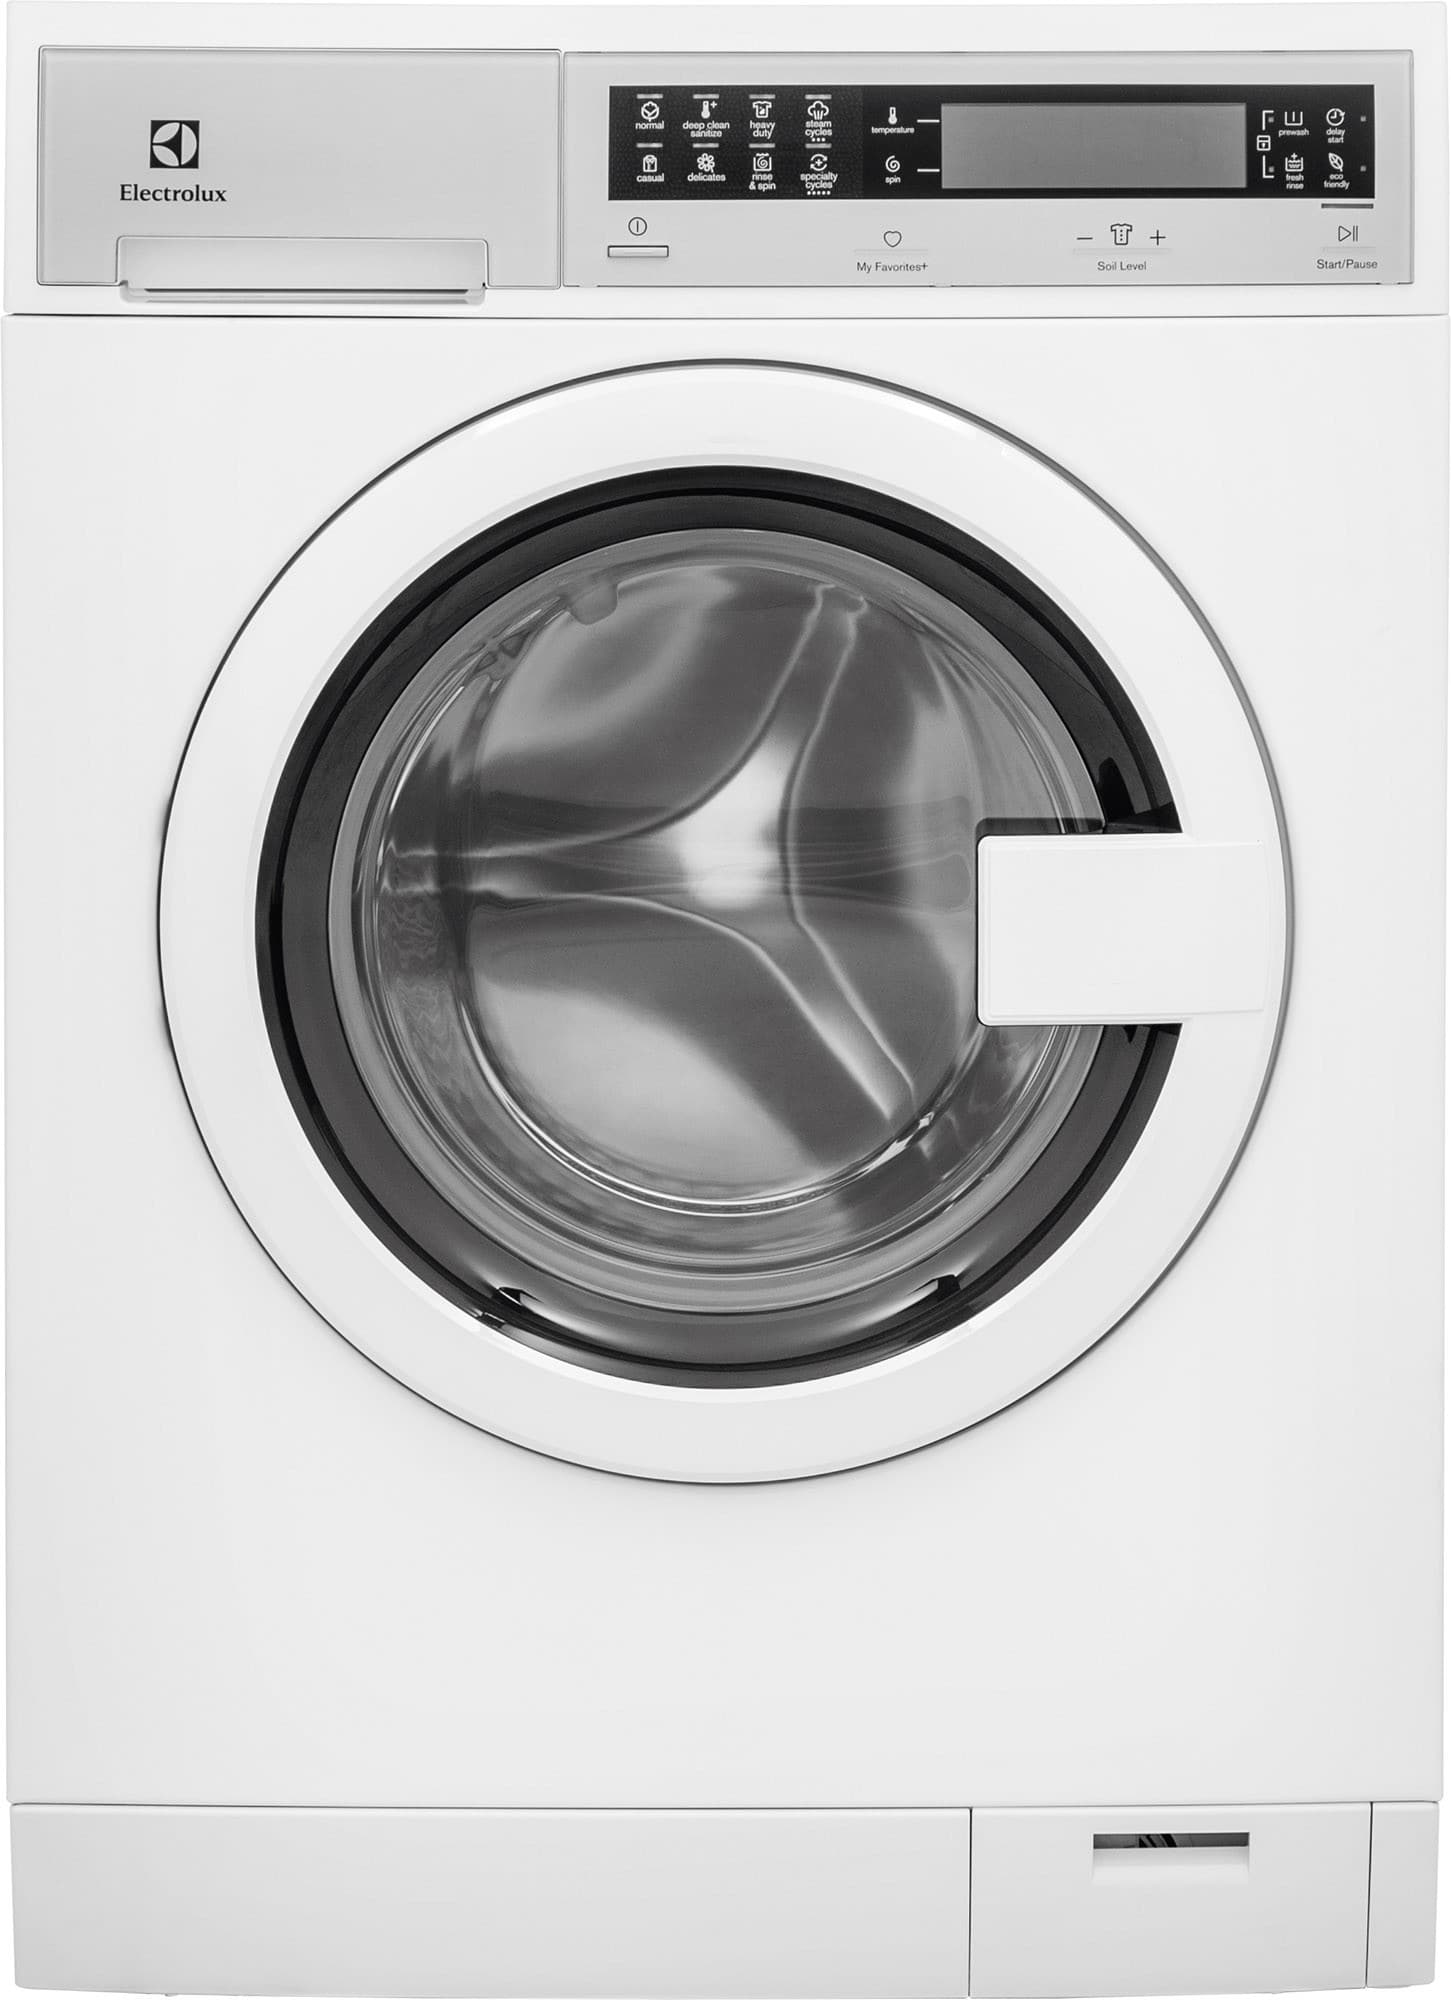 electrolux eifls20qsw 24 inch front load washer with steam nsf certified quick wash cycle automatic temperature control 14 total cycles delay start